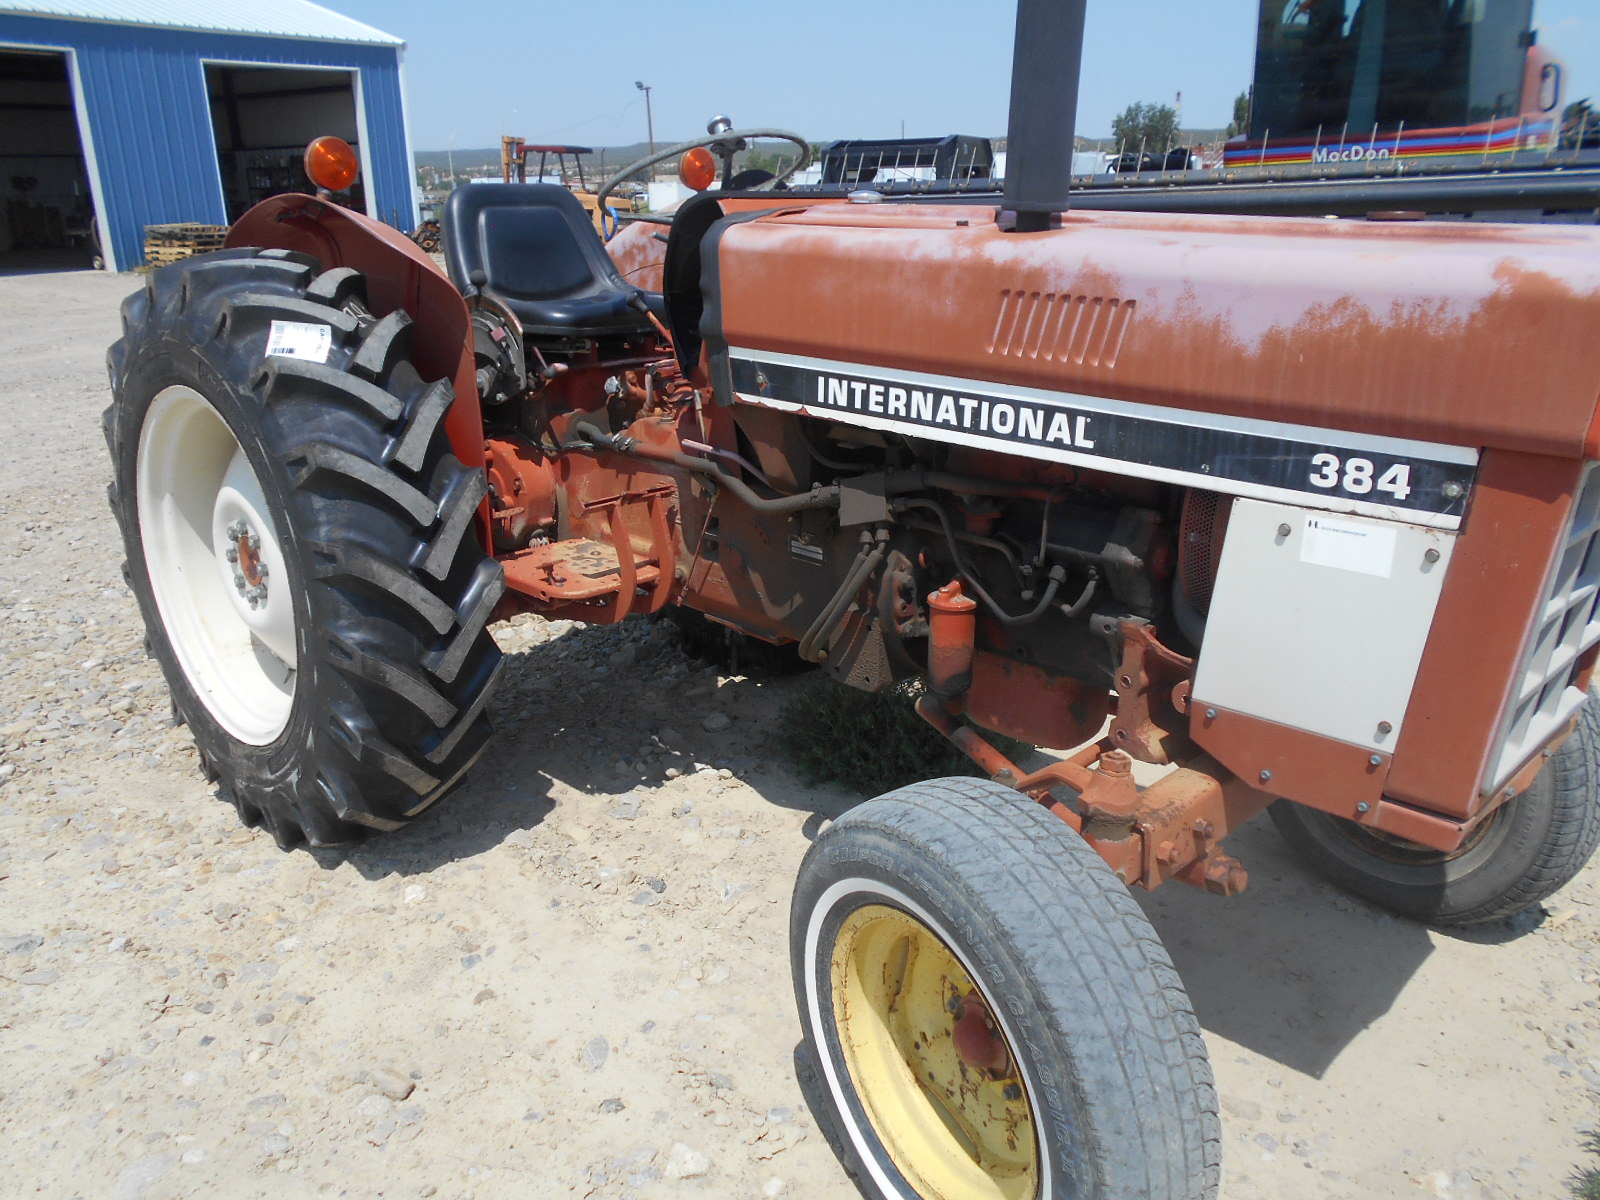 ih small tractors, international 3414 tractor, ih 424 tractor, international  460 tractor,